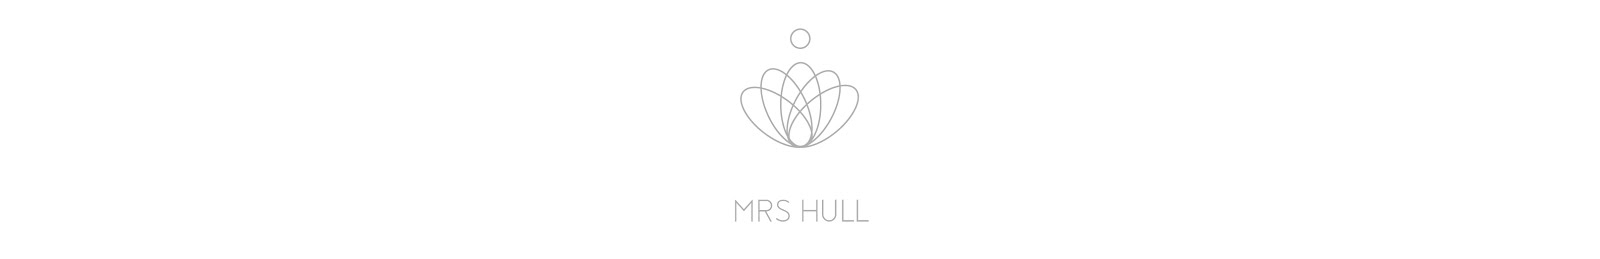 MRS HULL / BEAUTY / FASHION / LIFESTYLE